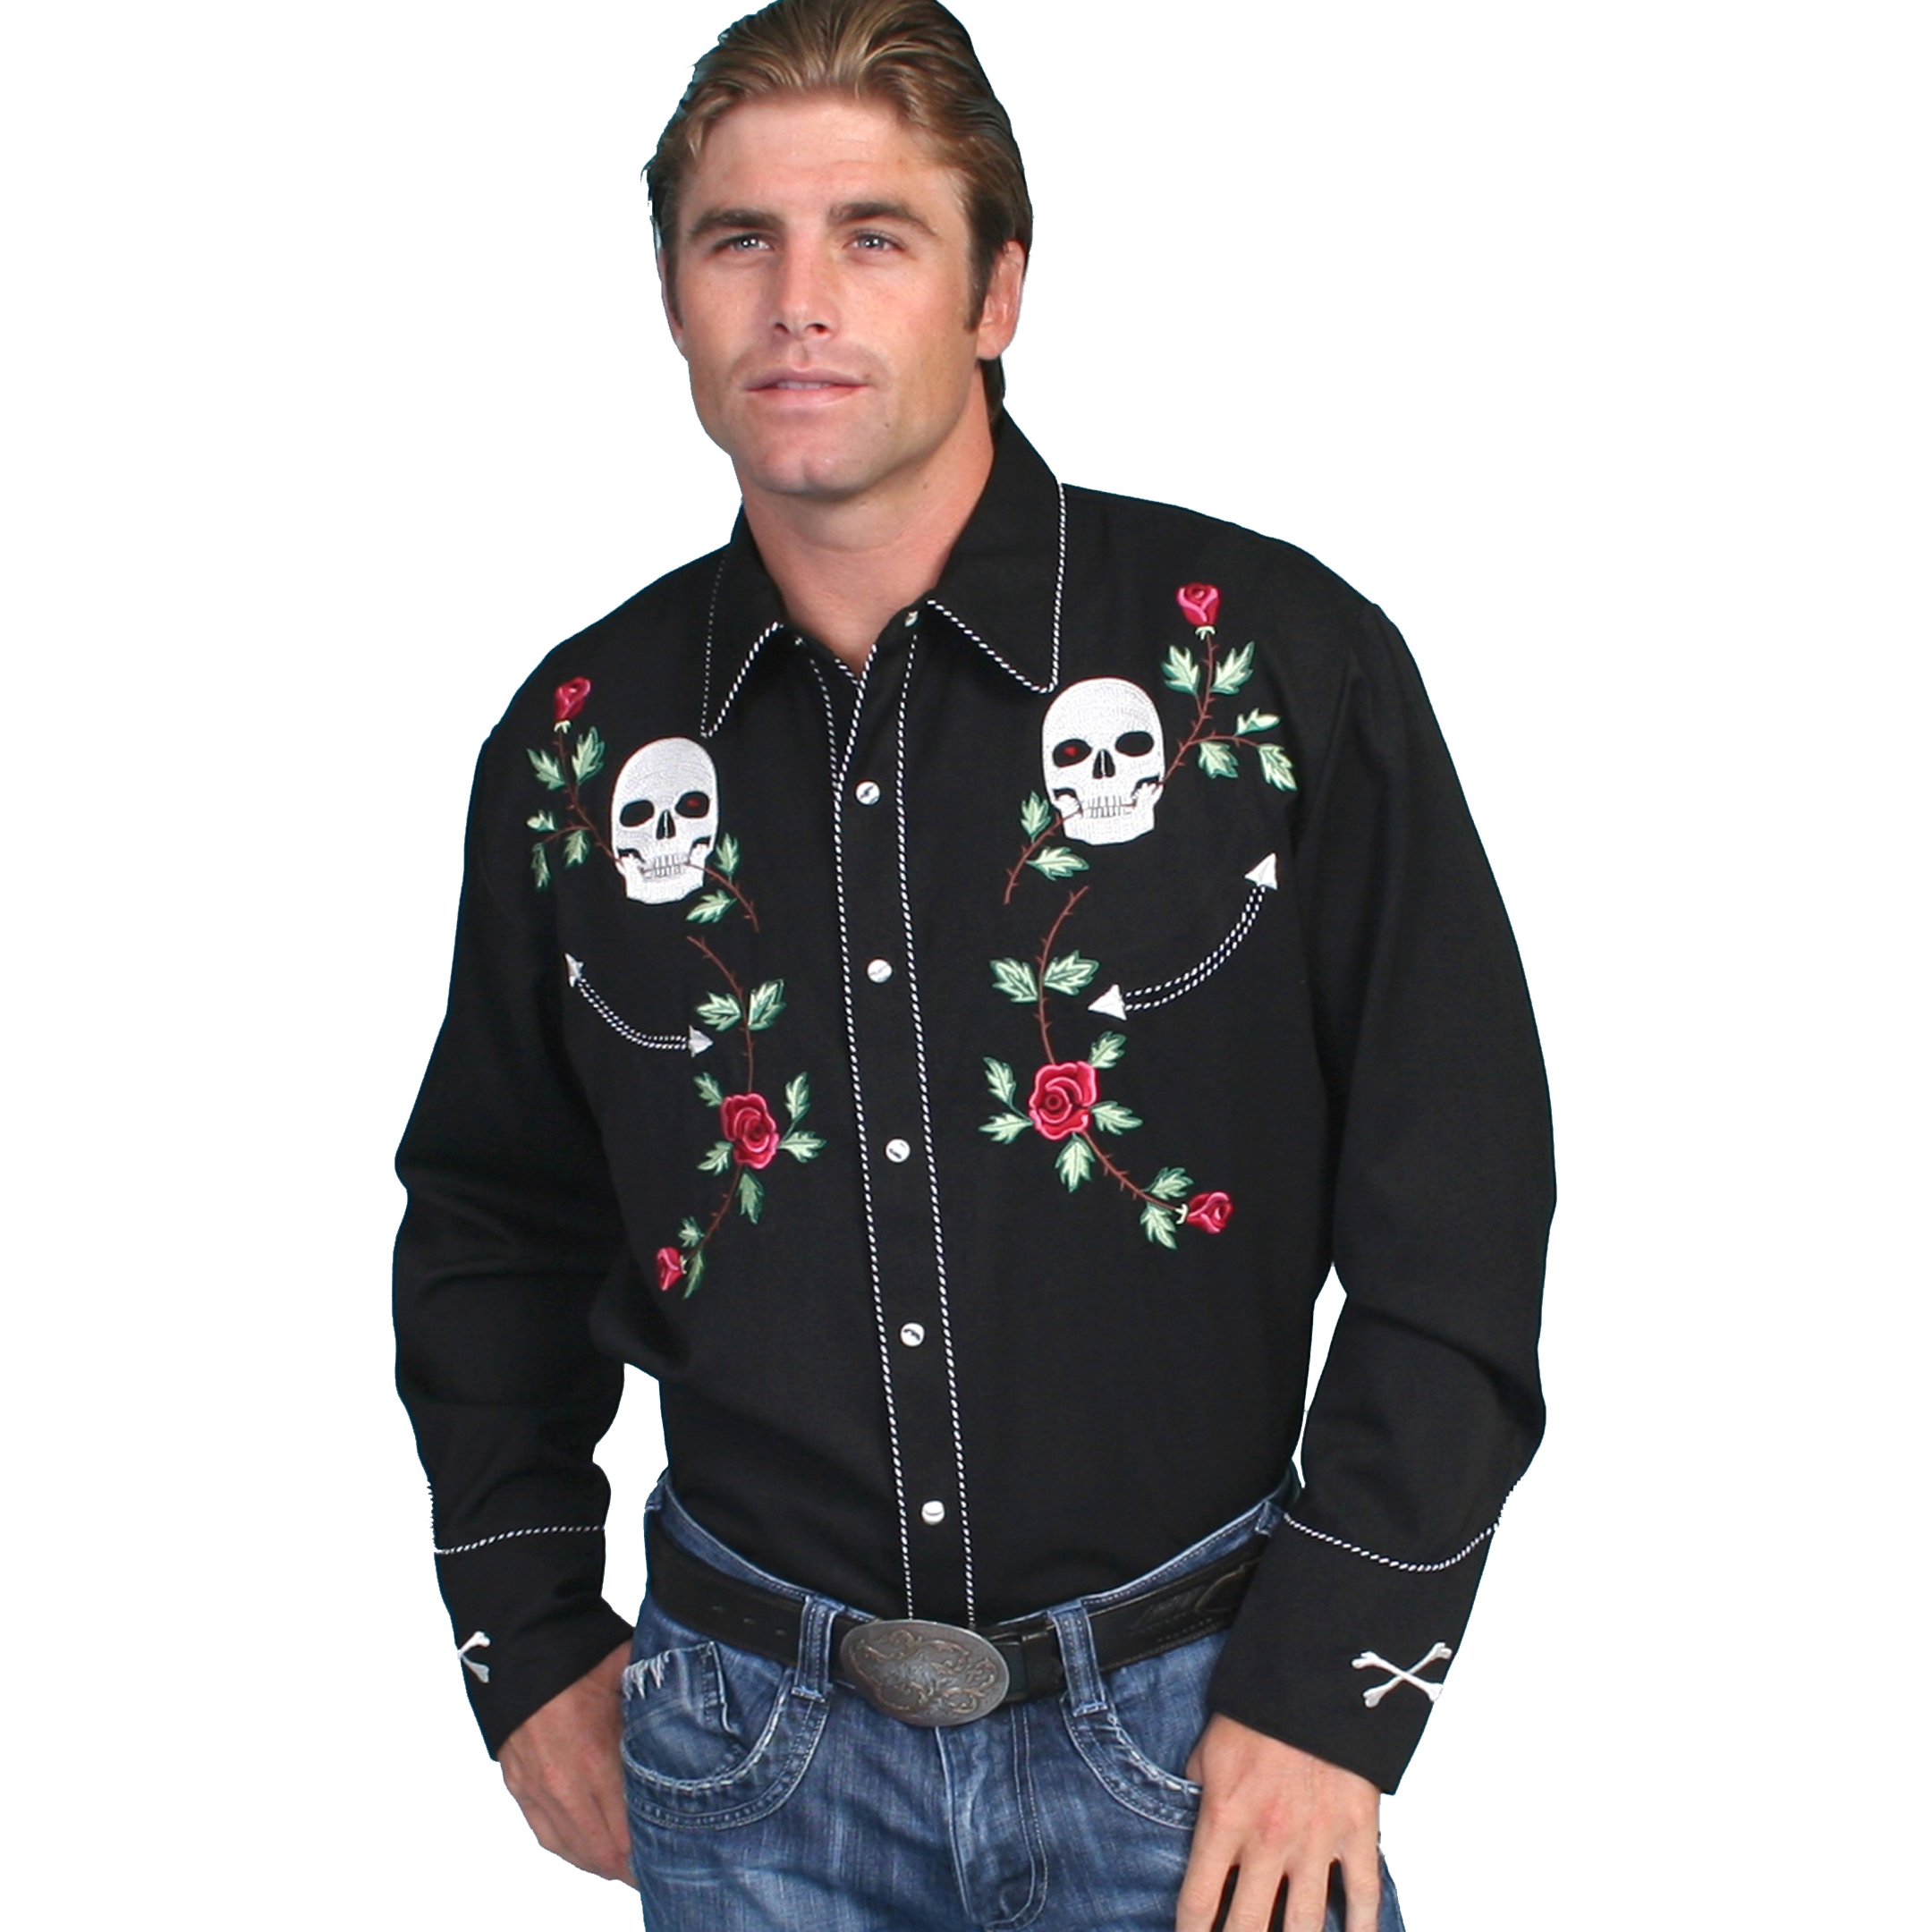 rebelsmarket_scully_western_skull_and_floral_embroidery_black_cowboy_pearl_snap_shirt_shirts_2.jpg